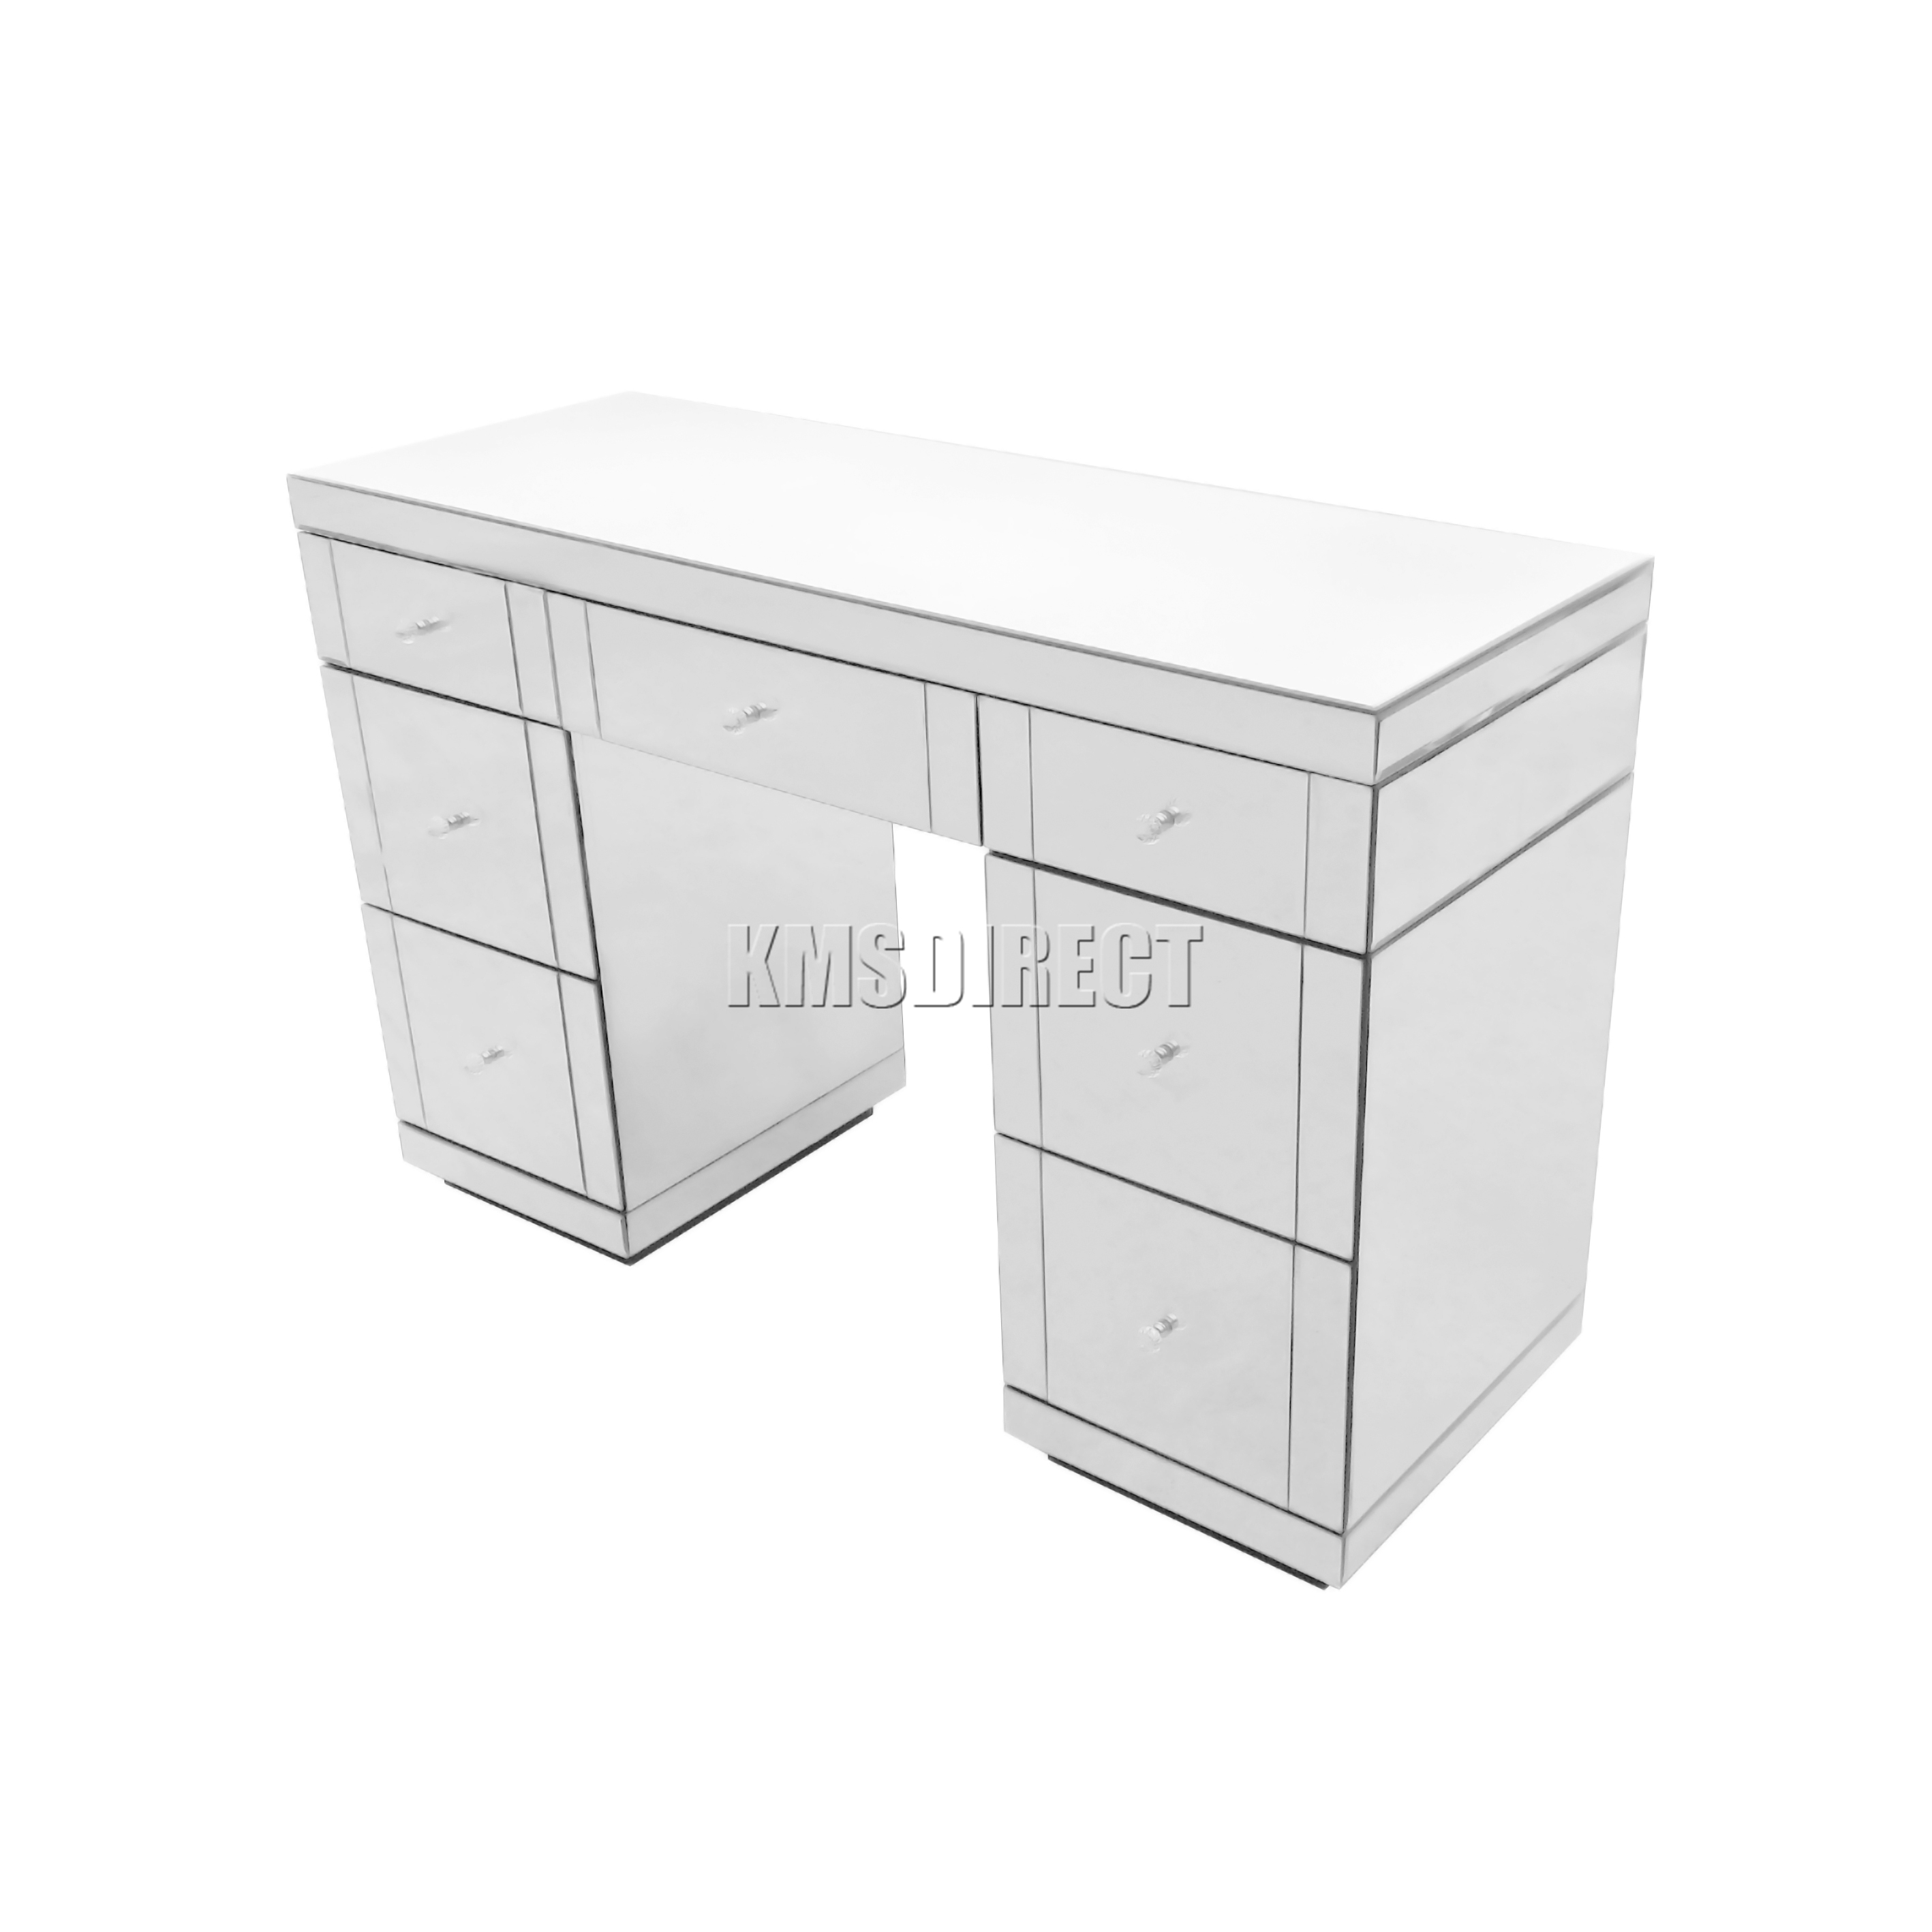 drawer mounted drawers oval interior in bedrooms design dressing ideas mirror three built corner shape with table vanities single wooden for mirrored fold stained rectangle flooring walmart on vanity ivory white makeup square